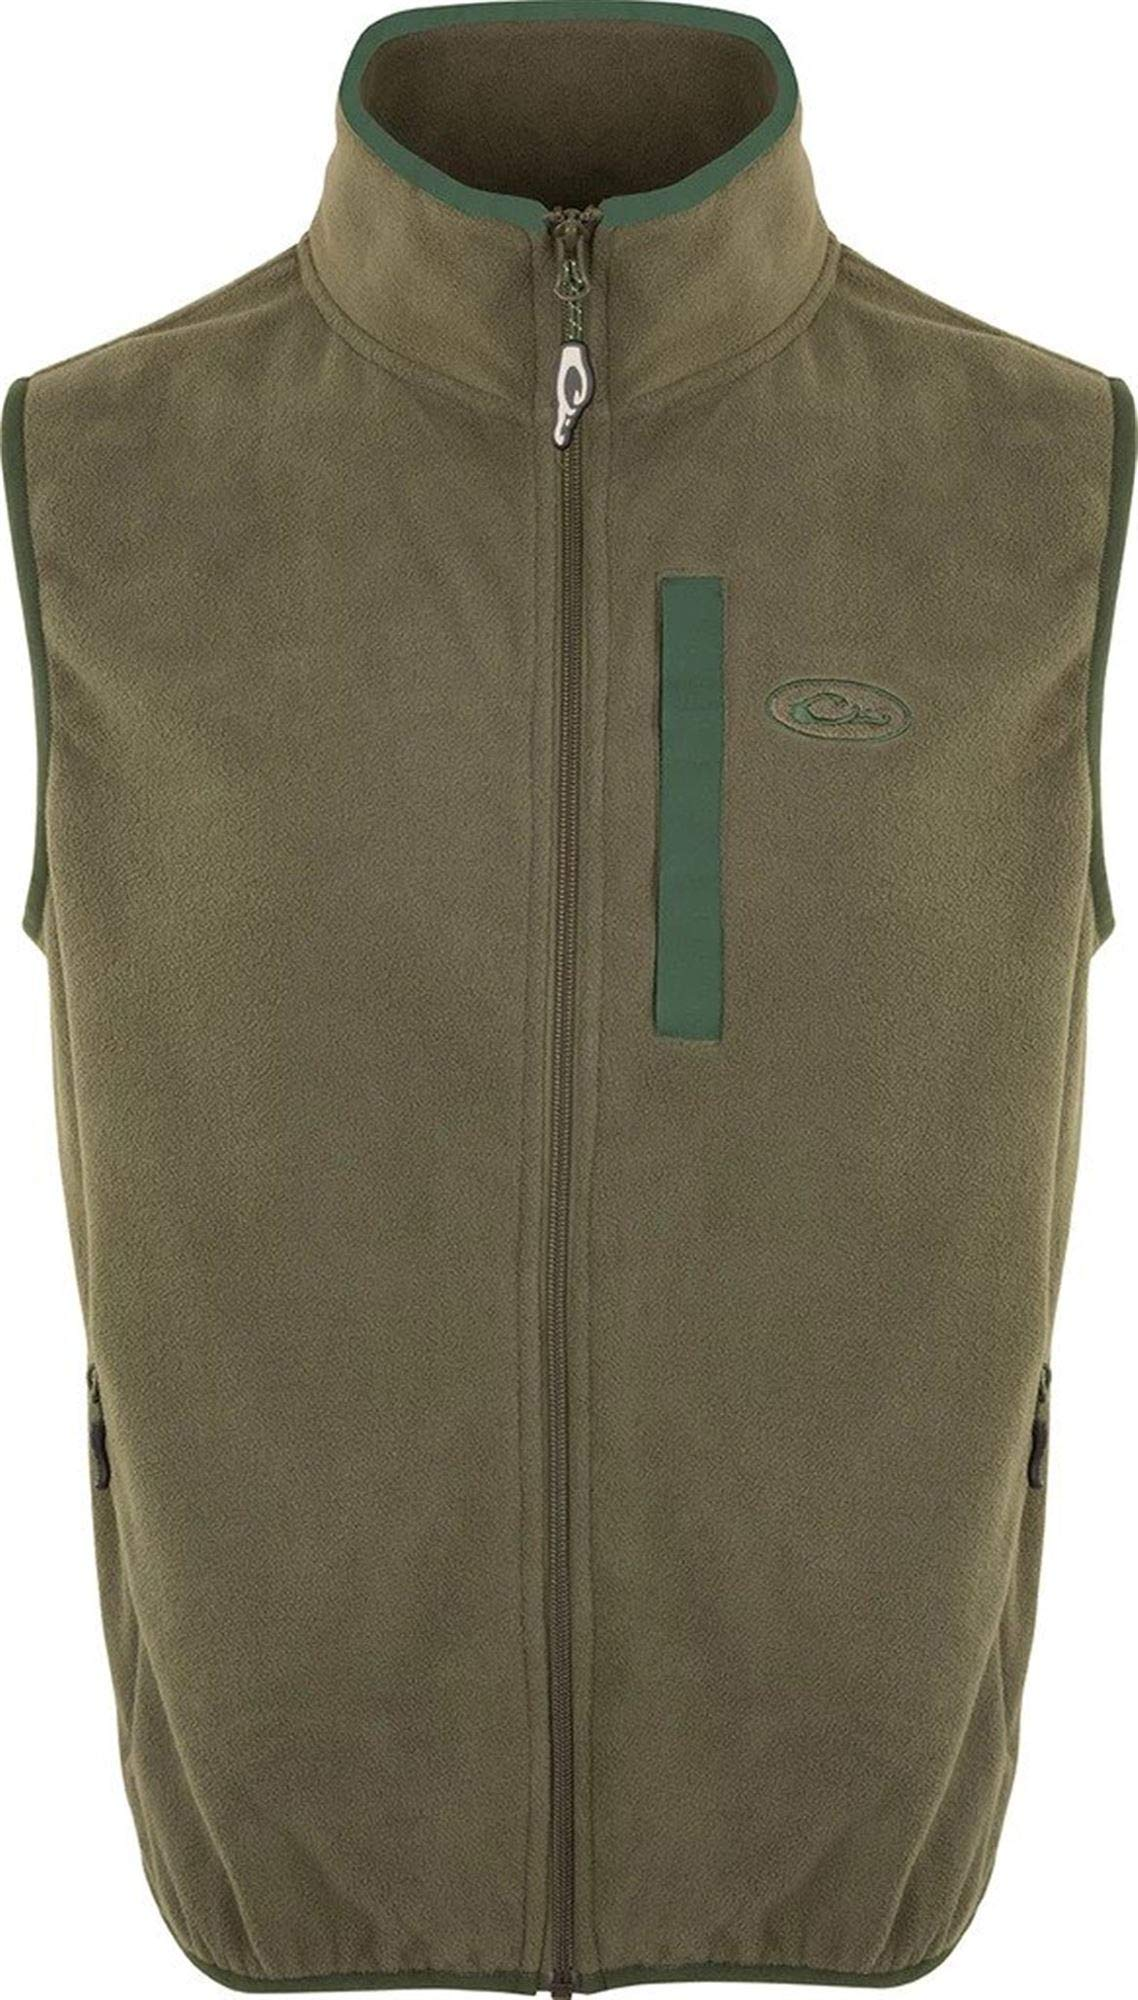 Drake Youth Camp Fleece Vest Olive/Dark Green 12 by Drake